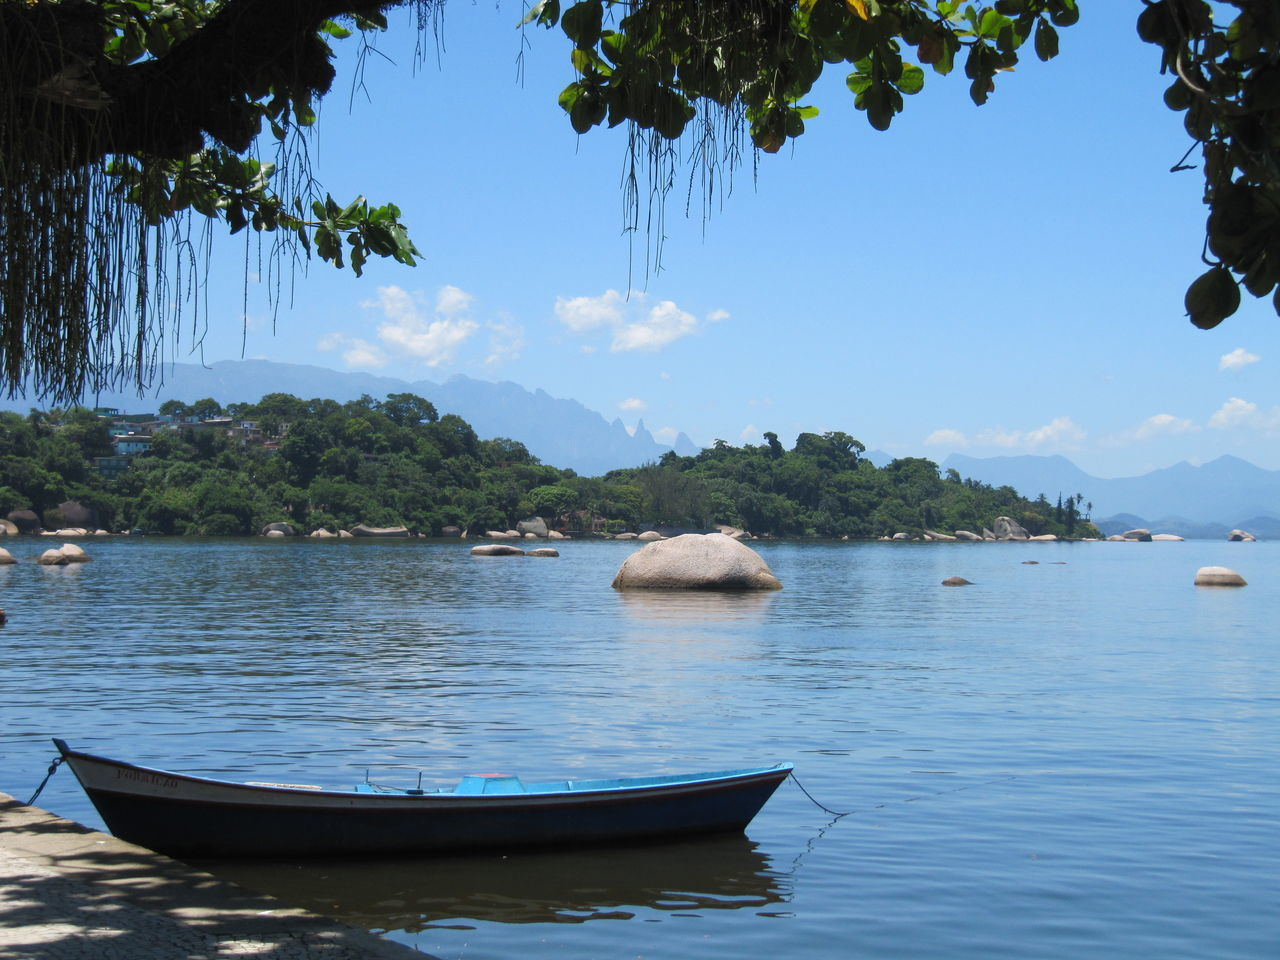 Baía De Guanabara Beauty In Nature Day Nature Nautical Vessel Outdoors Paquetá Island Rio De Janeiro Scenics Sea Tranquil Scene Tranquility Tree Water